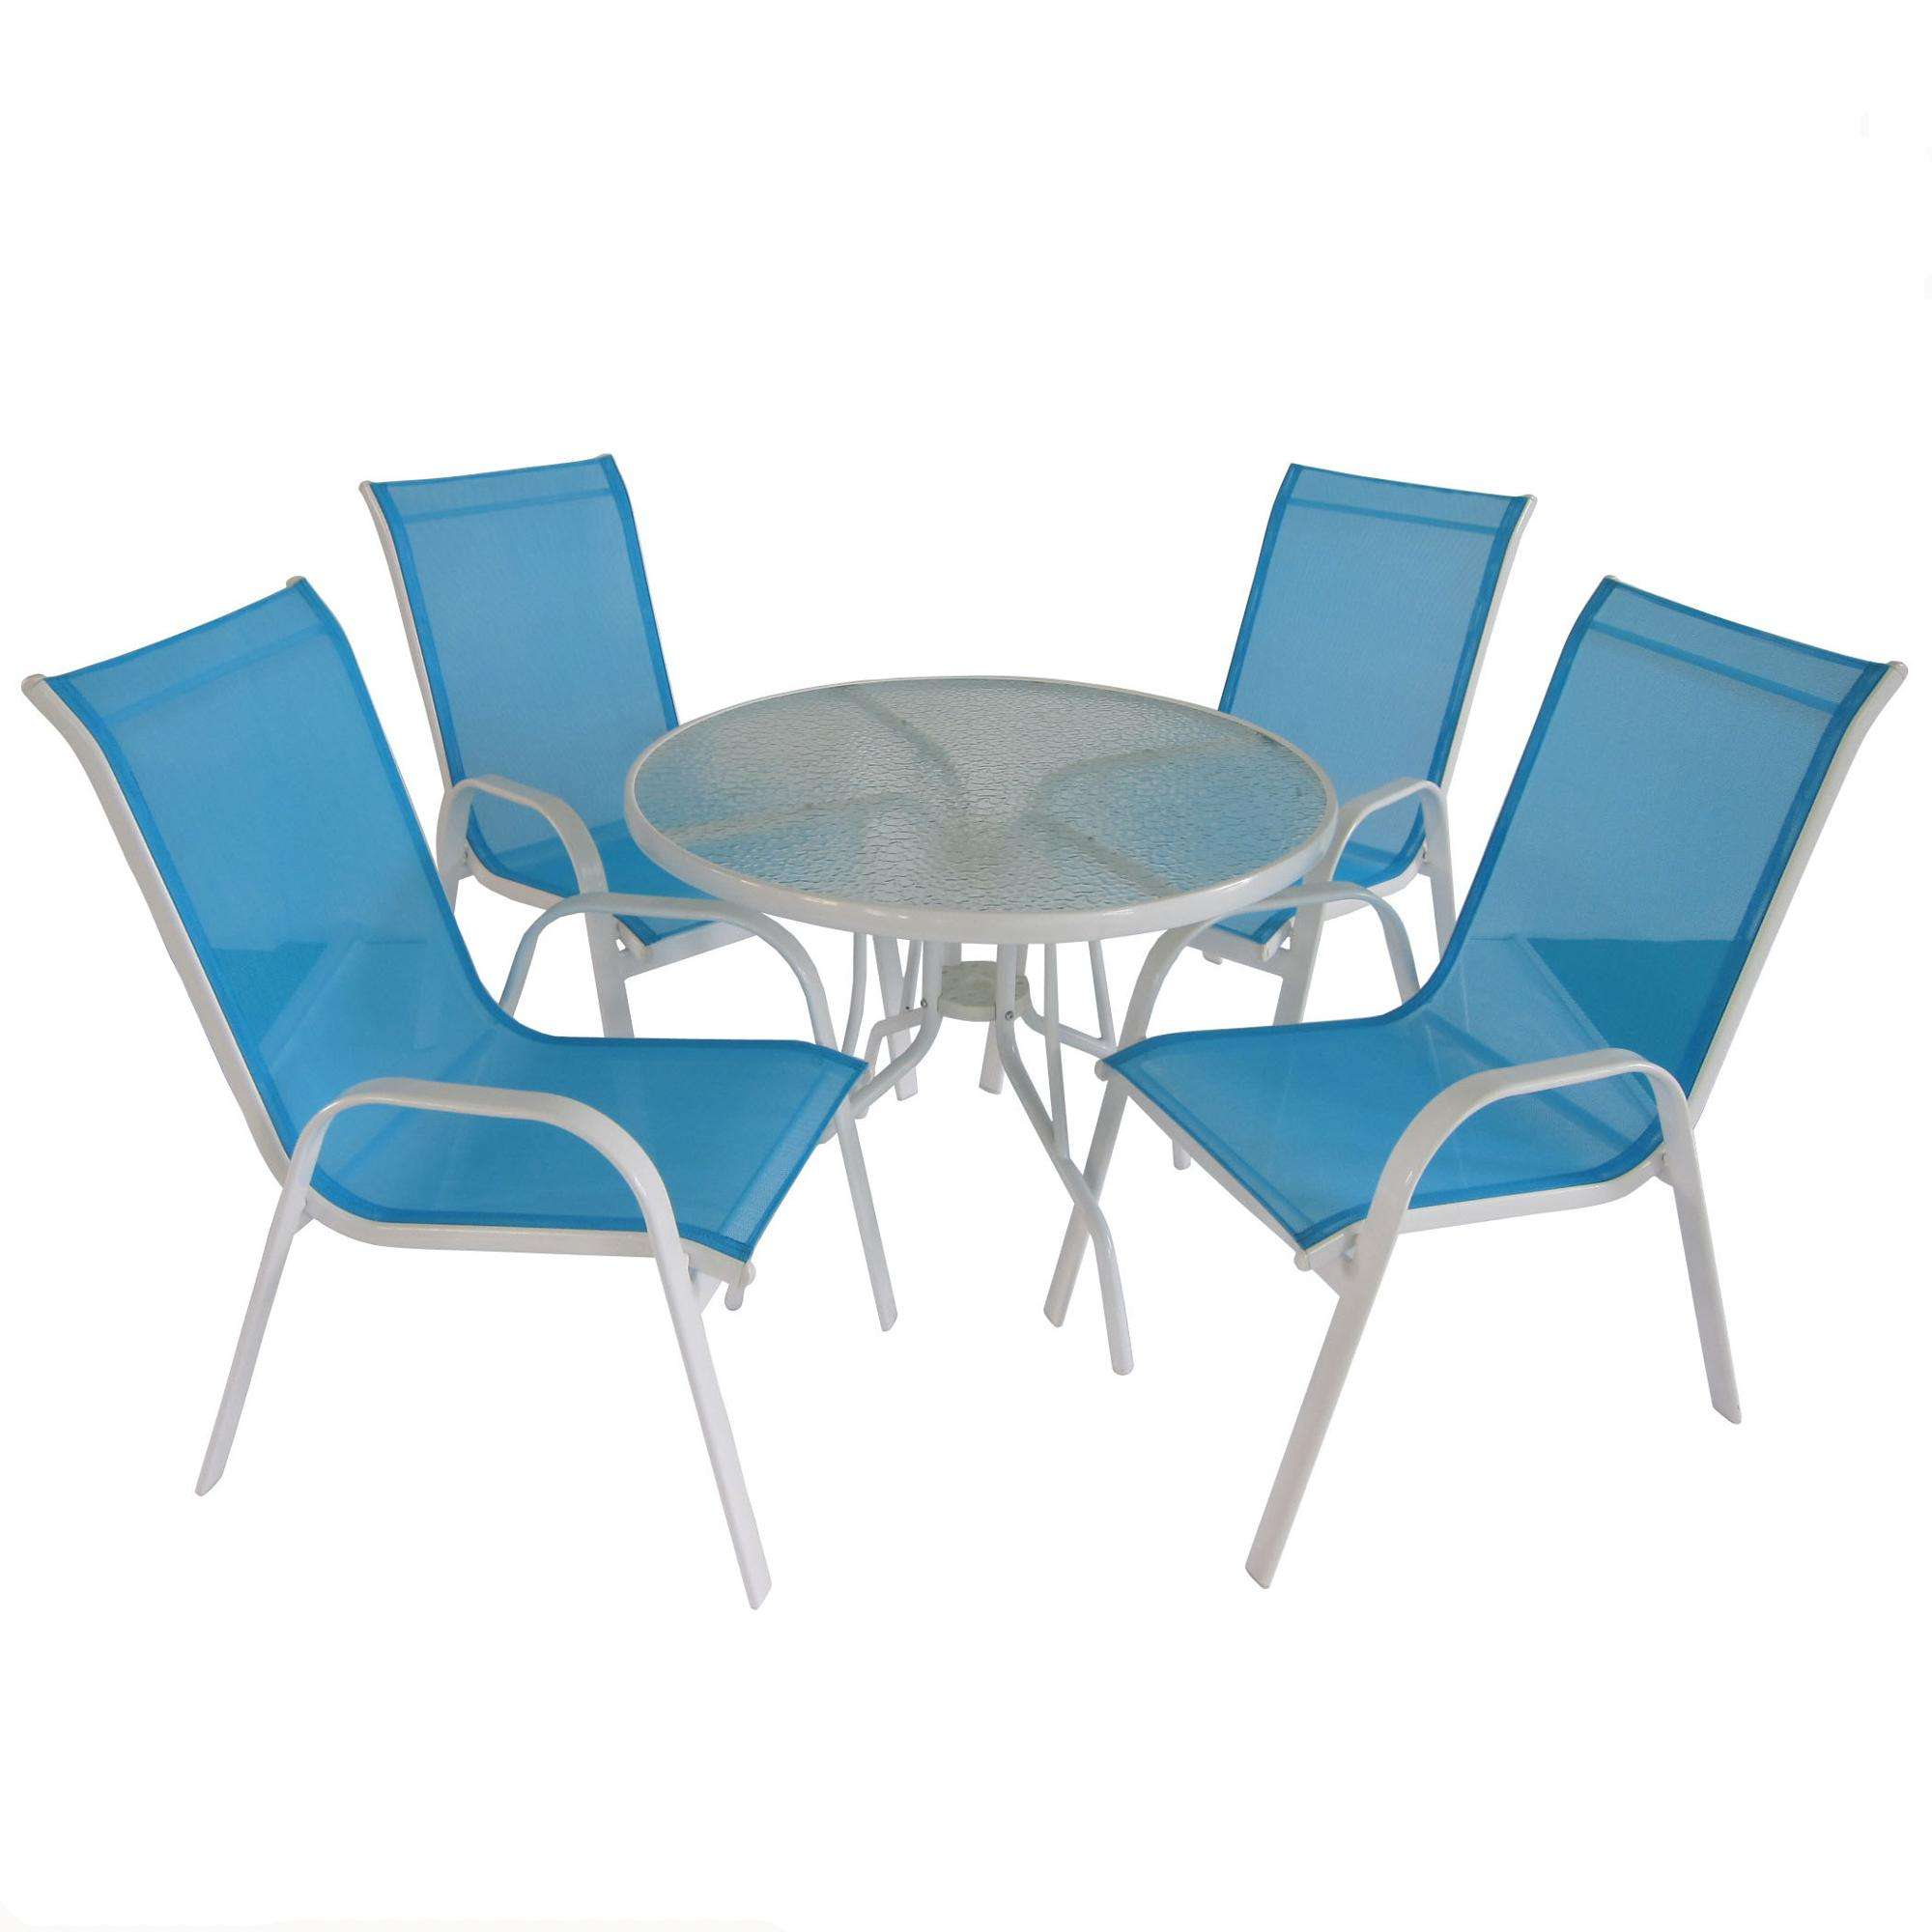 steel garden set 1 table 4 chairs garden dining set